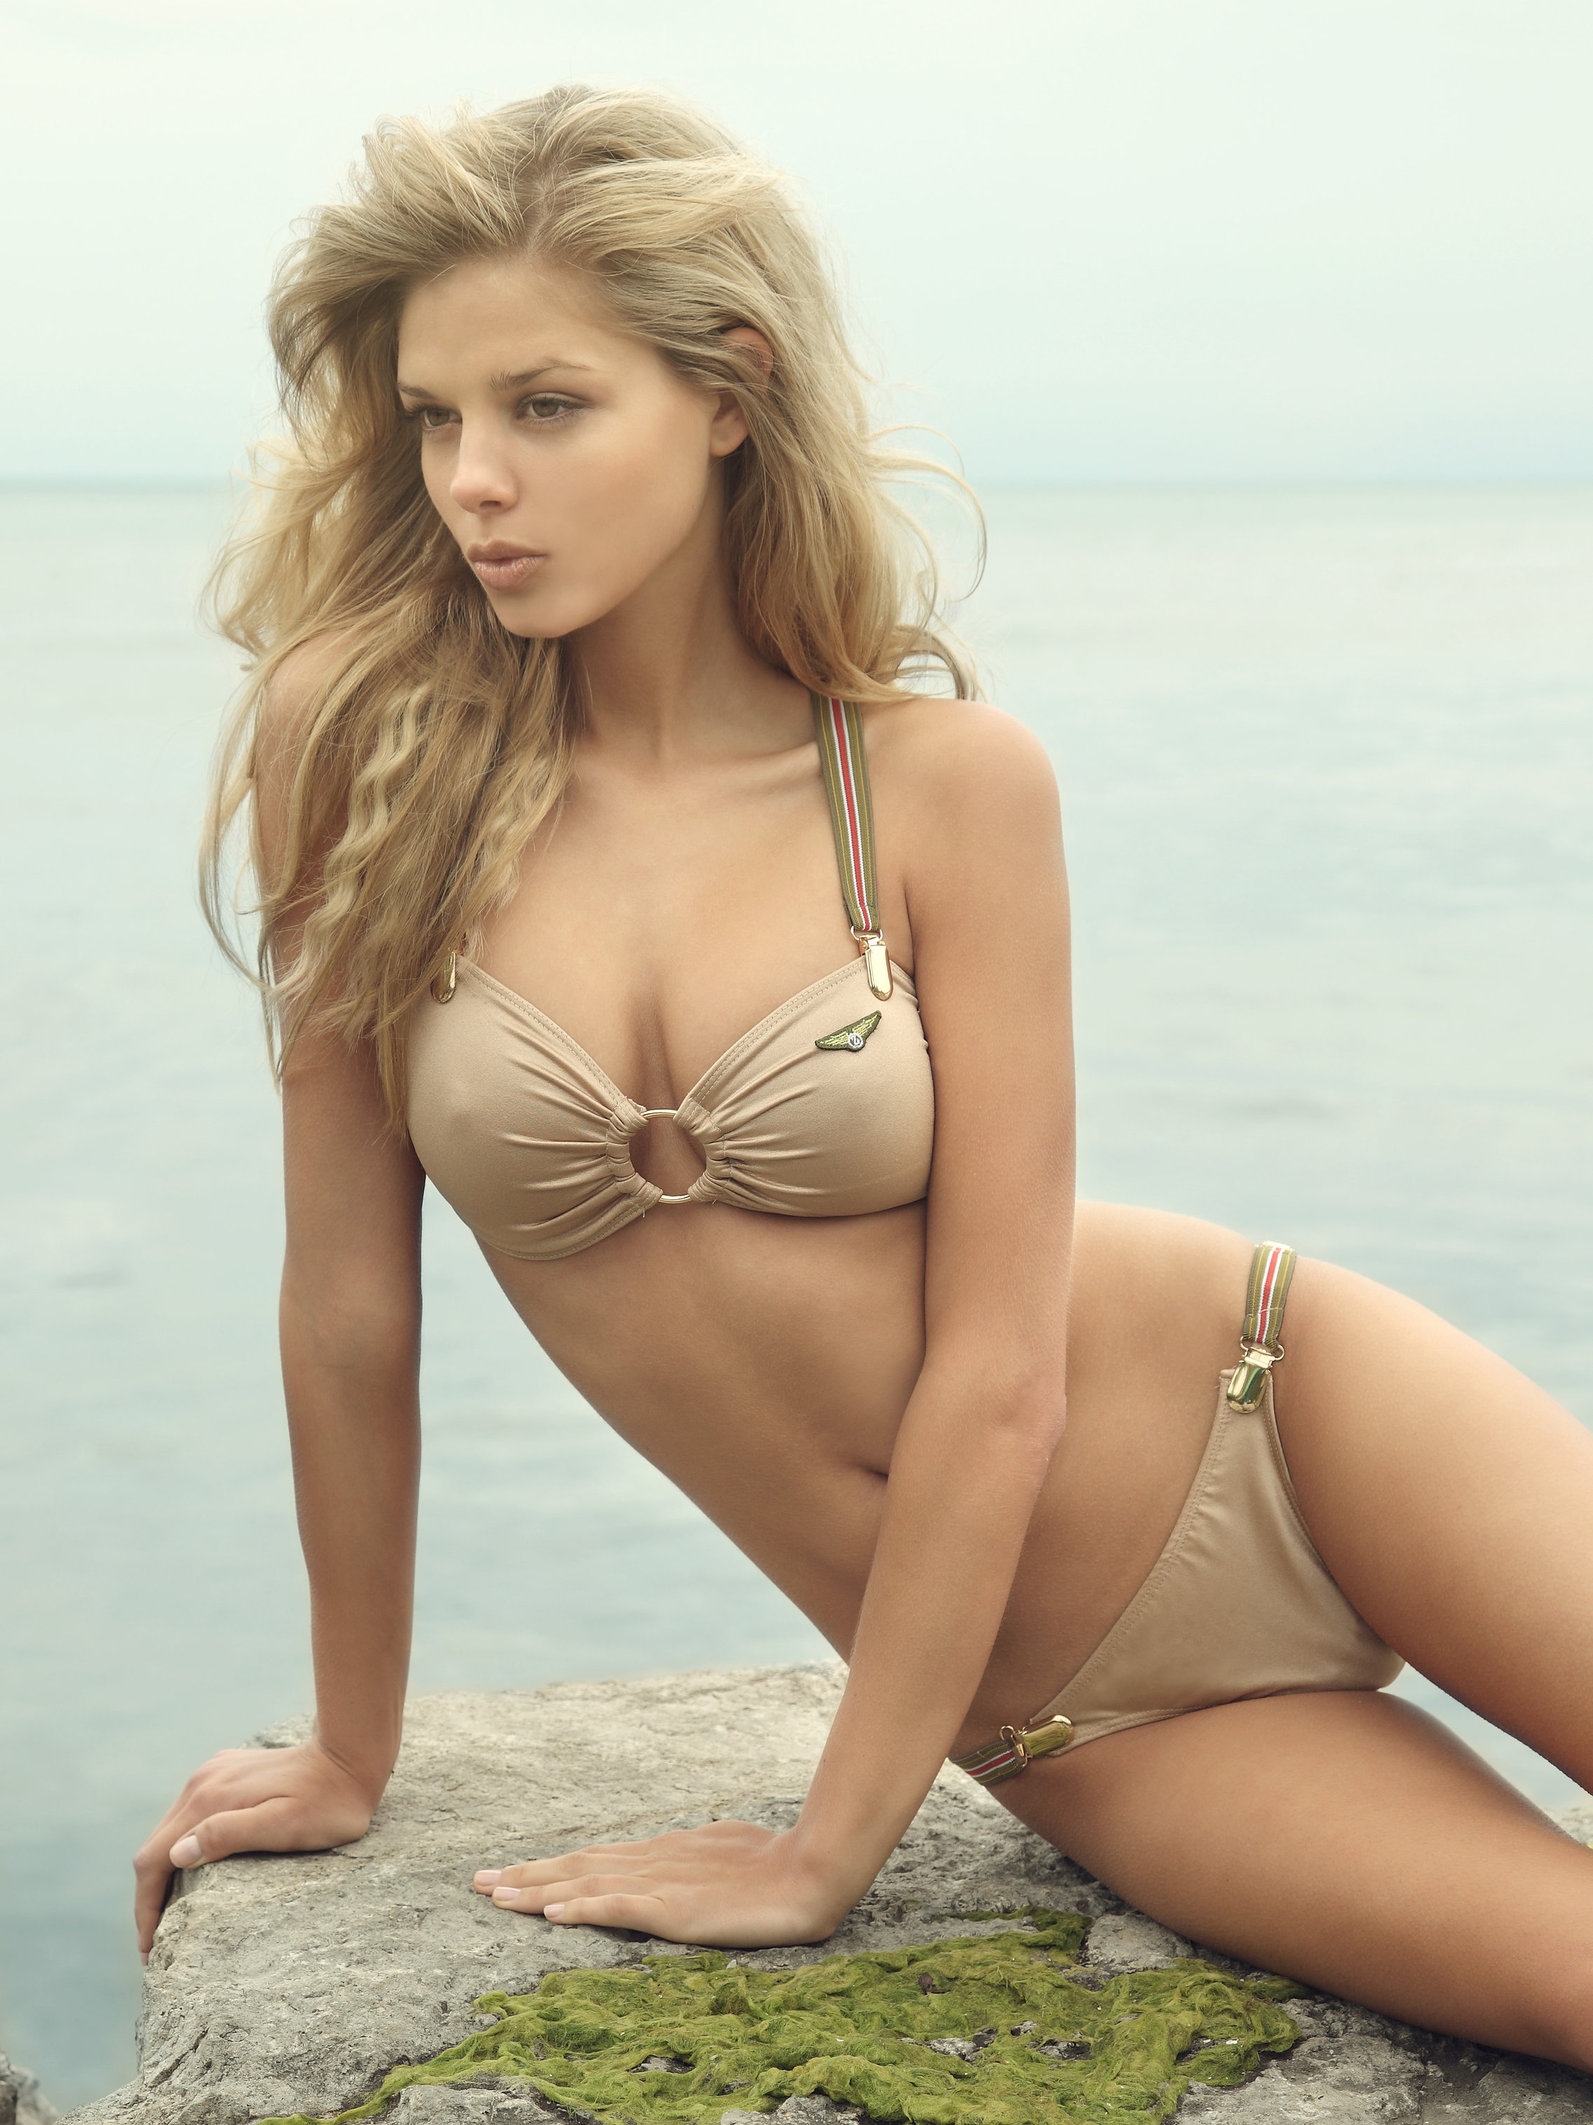 Danielle Knudson delicious for Zeugari swimwear/beachwear 2011 Zeugari swimwear/beachwear line